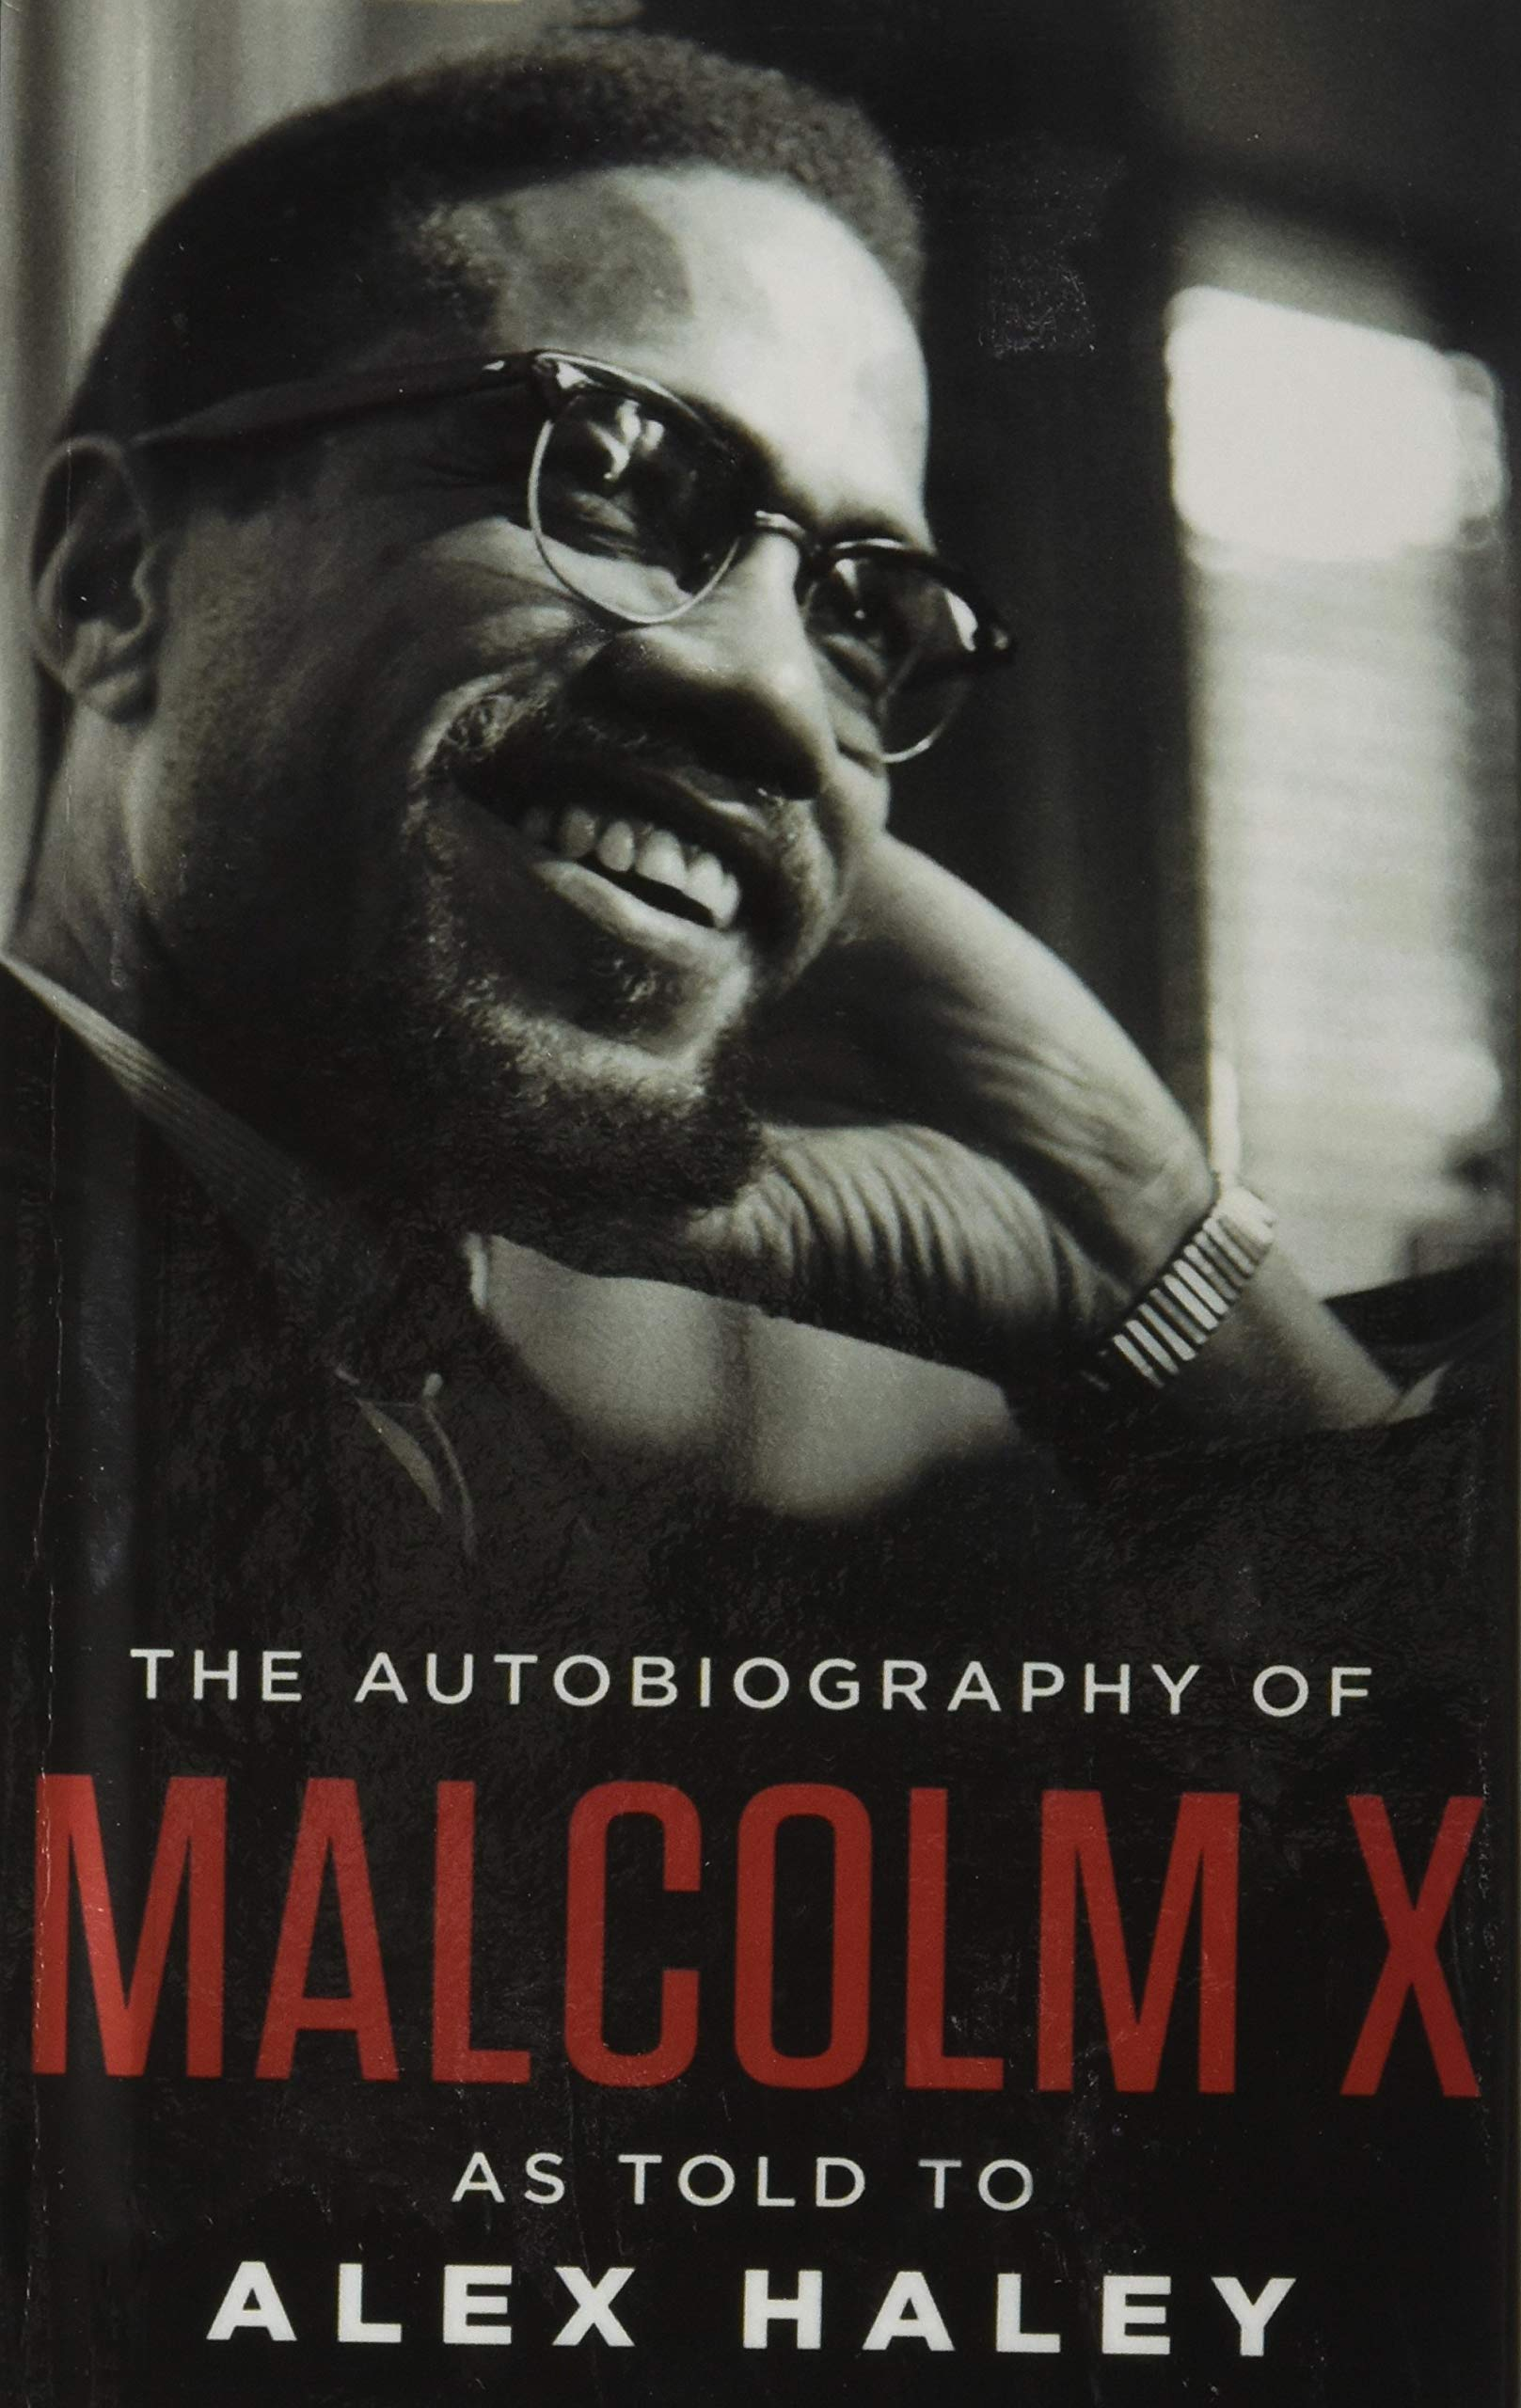 Image result for The Autobiography of Malcolm X by Malcolm X